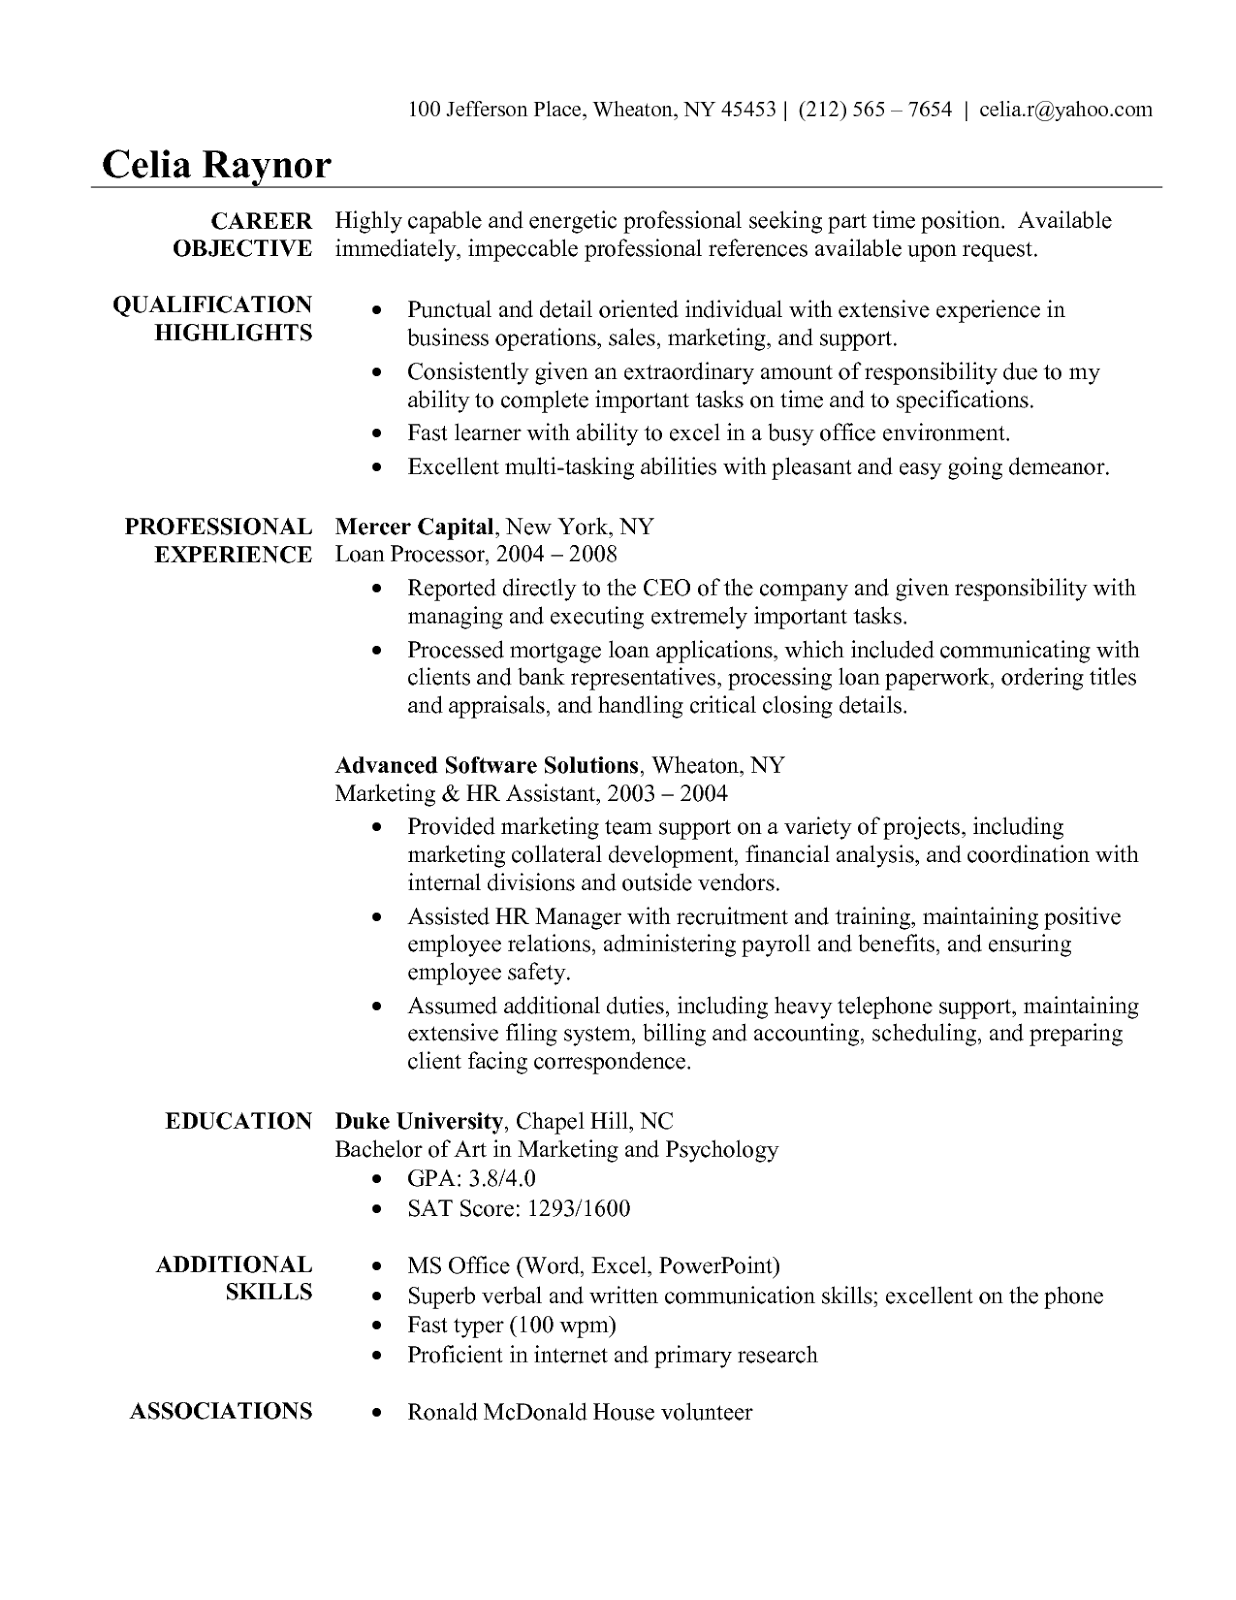 sample resume of administrative assistant        images about Resume on Pinterest   Sample resume       sample resume